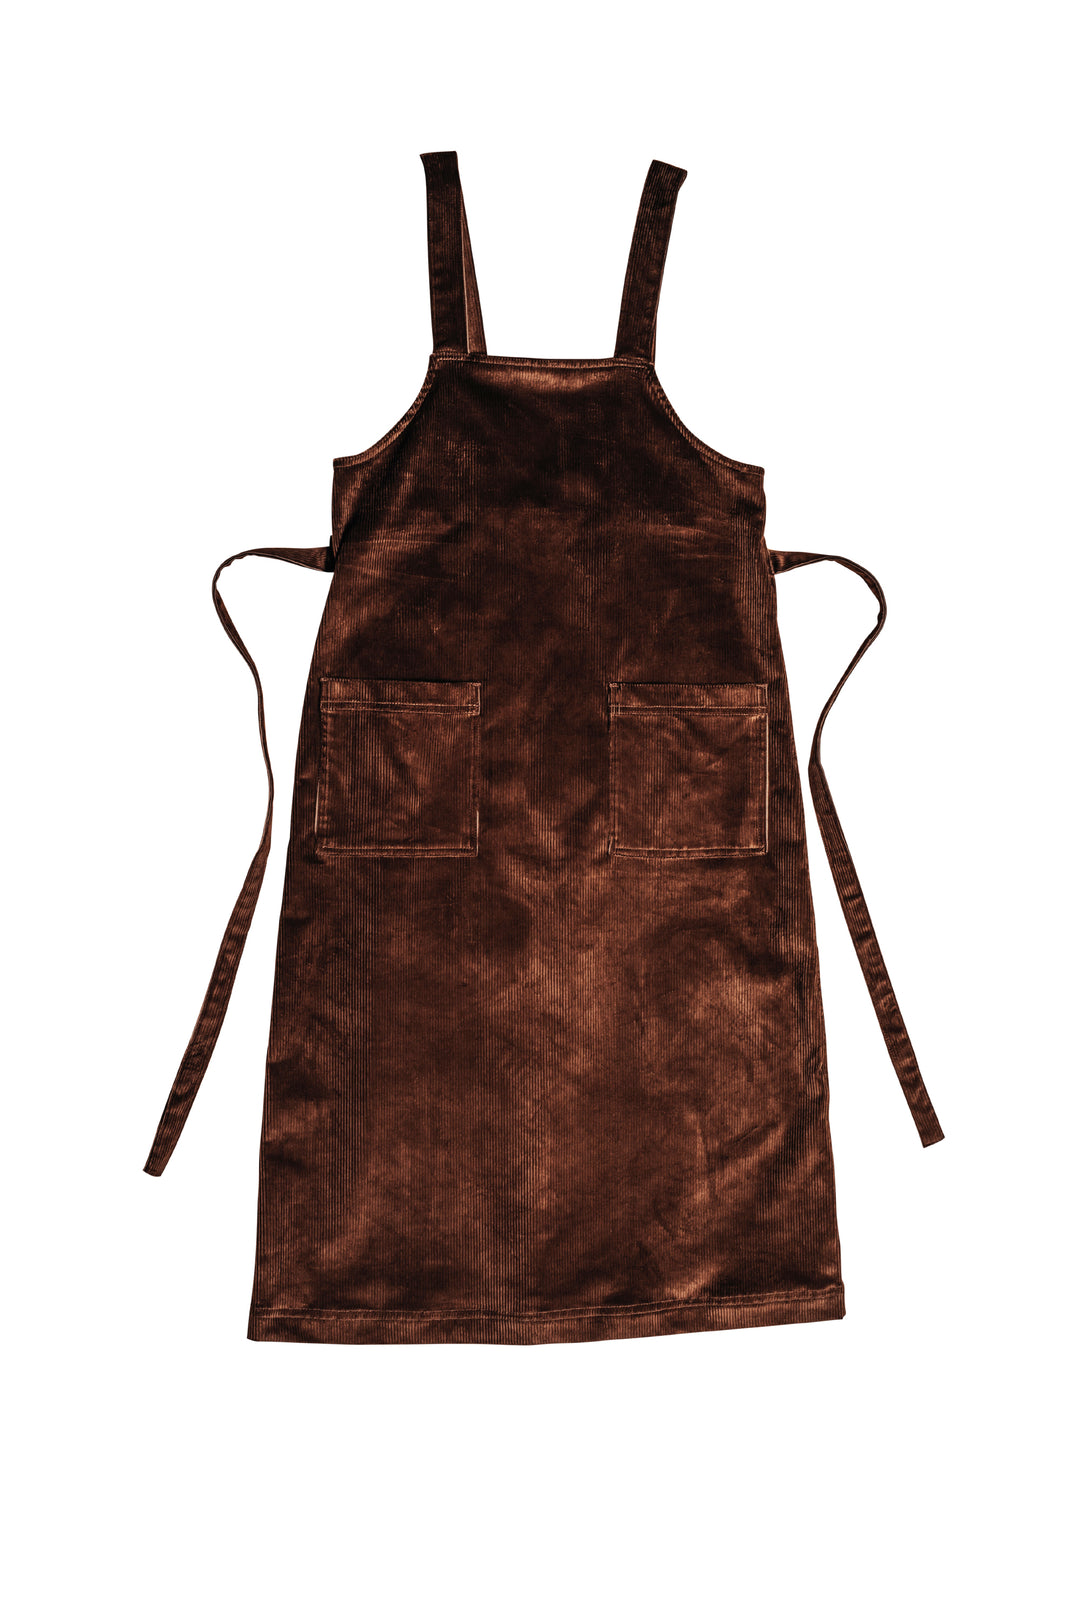 brown corduroy pinafore apron dress